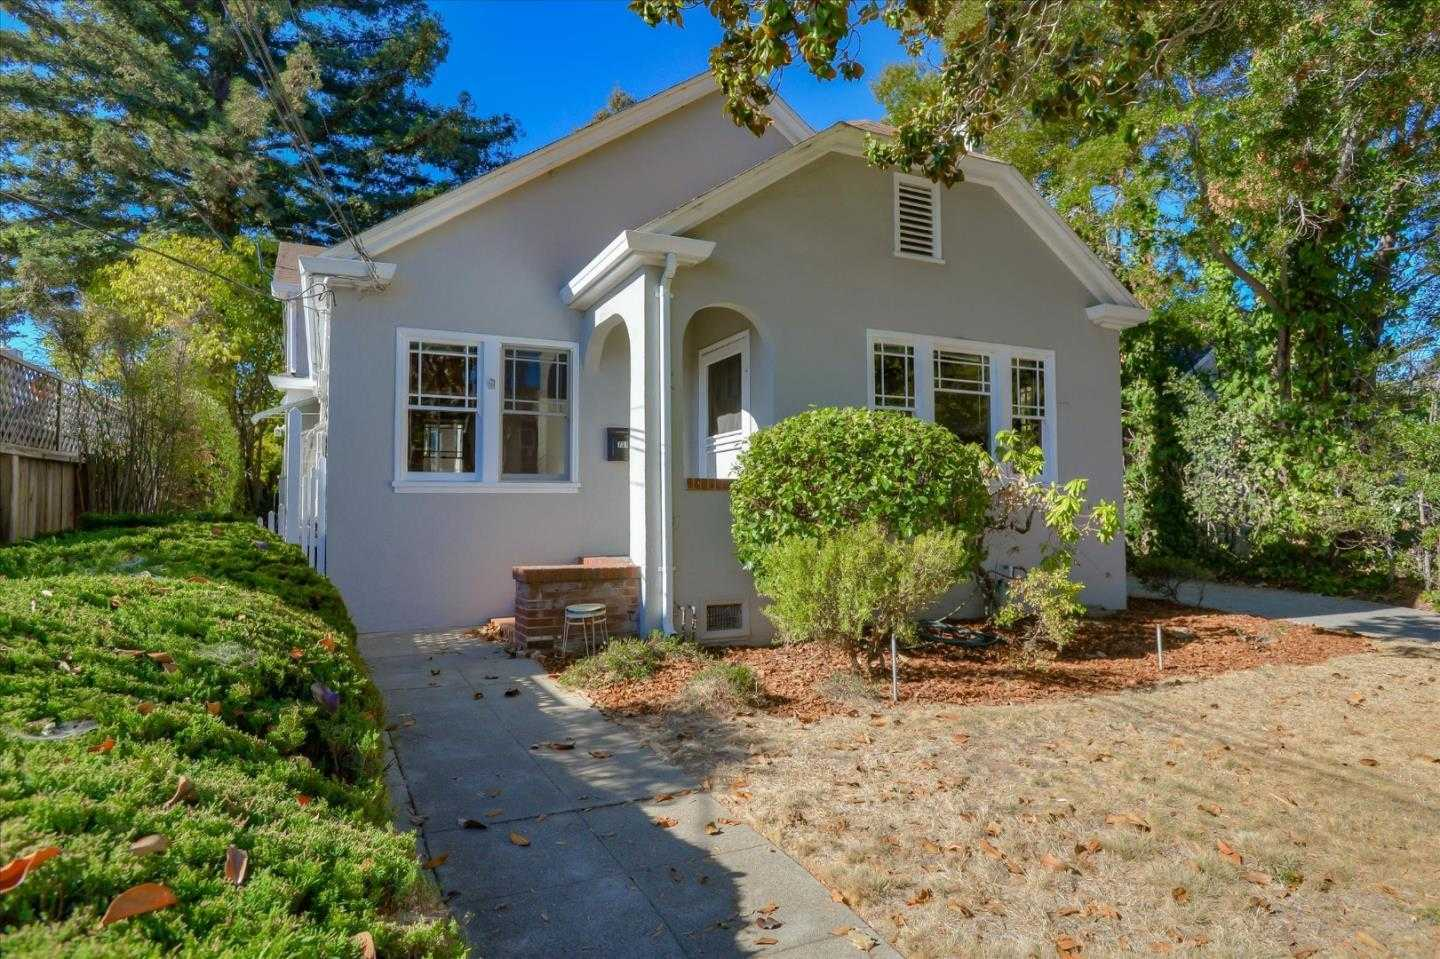 $1,650,000 - 3Br/2Ba -  for Sale in San Mateo